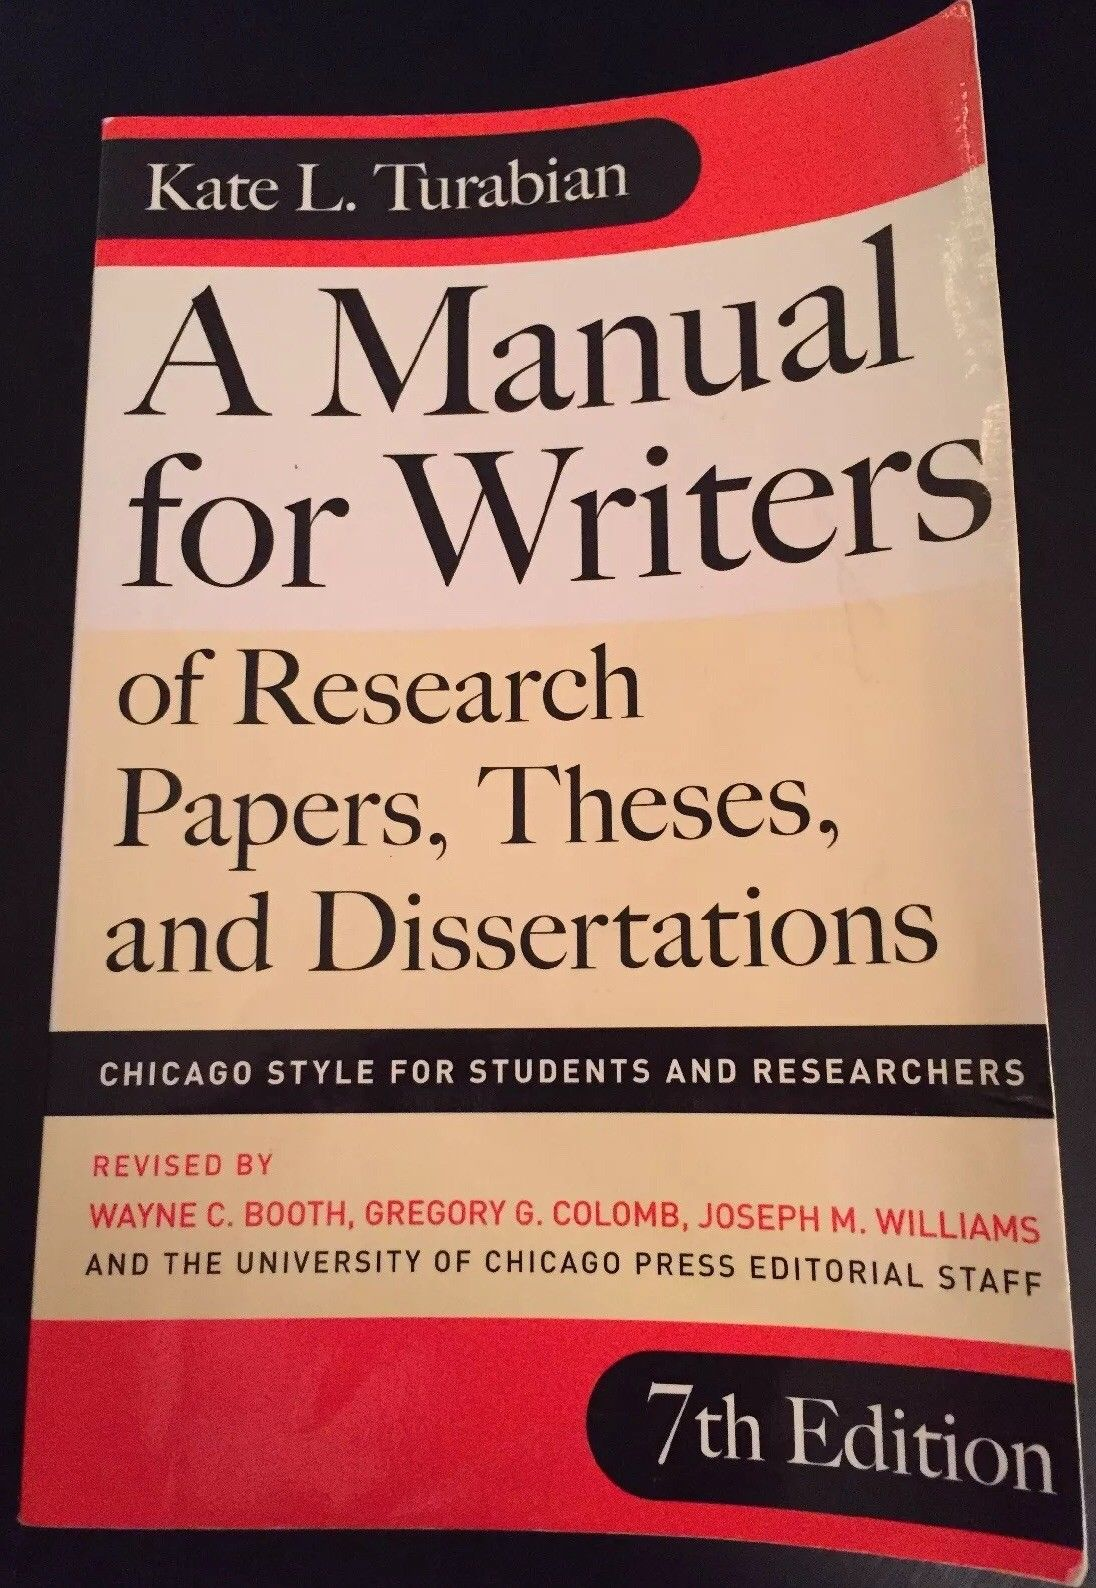 018 Research Paper Manual For Writers Of Papers Theses And Dissertations S Magnificent A Amazon 9th Edition 8th 13 Full